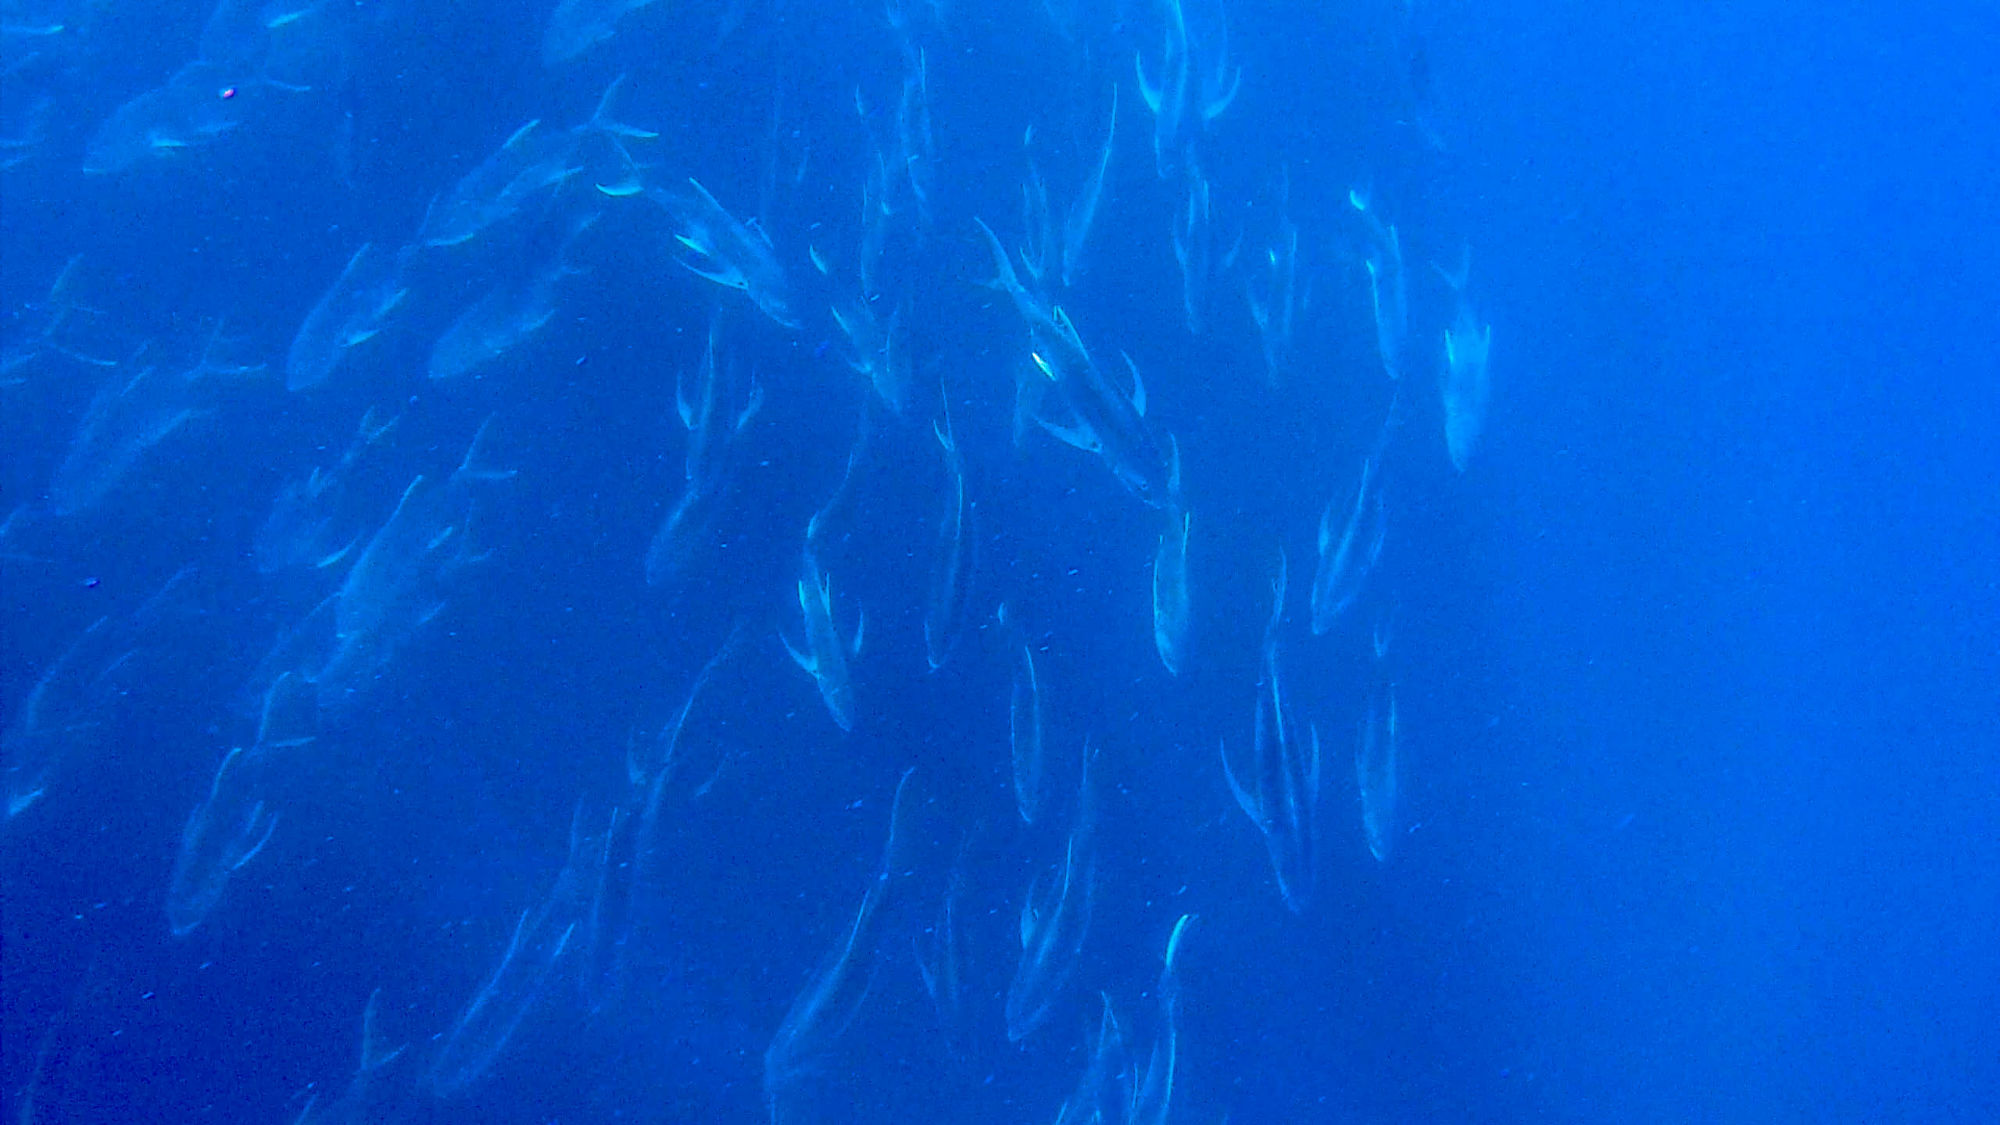 A School of Pacific Crevalle Jacks after Surfacing from the Scuba Dive in Costa Rica